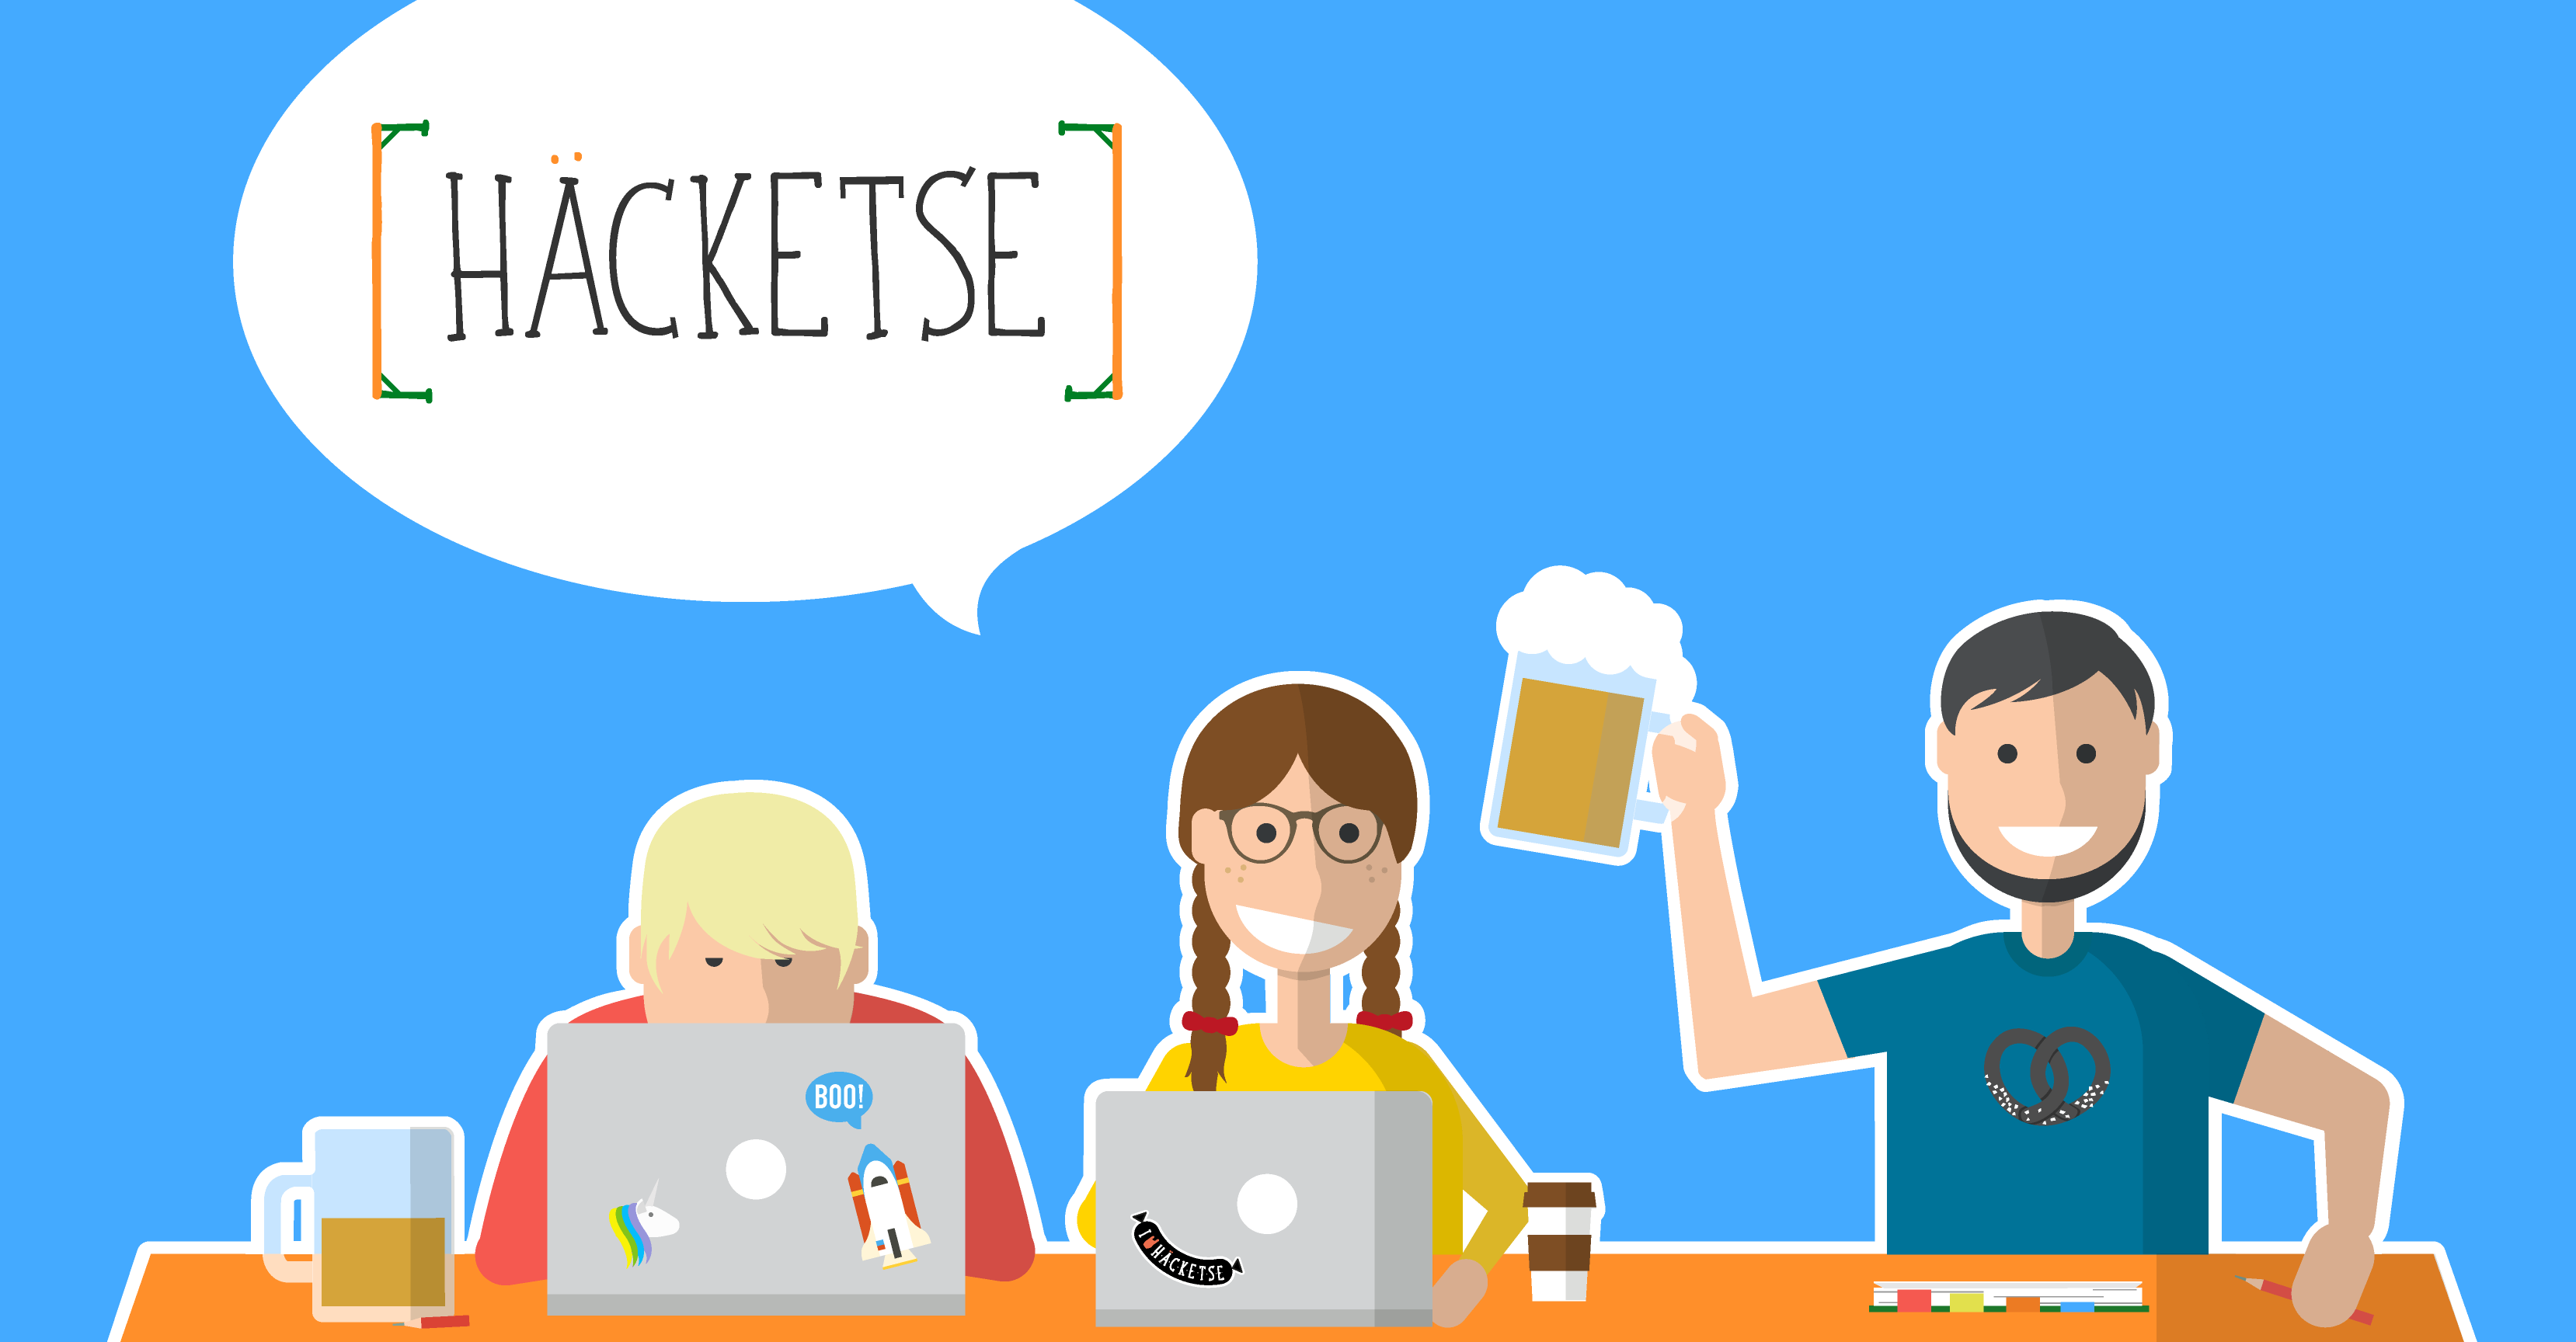 hacketse hackathon k15t-software